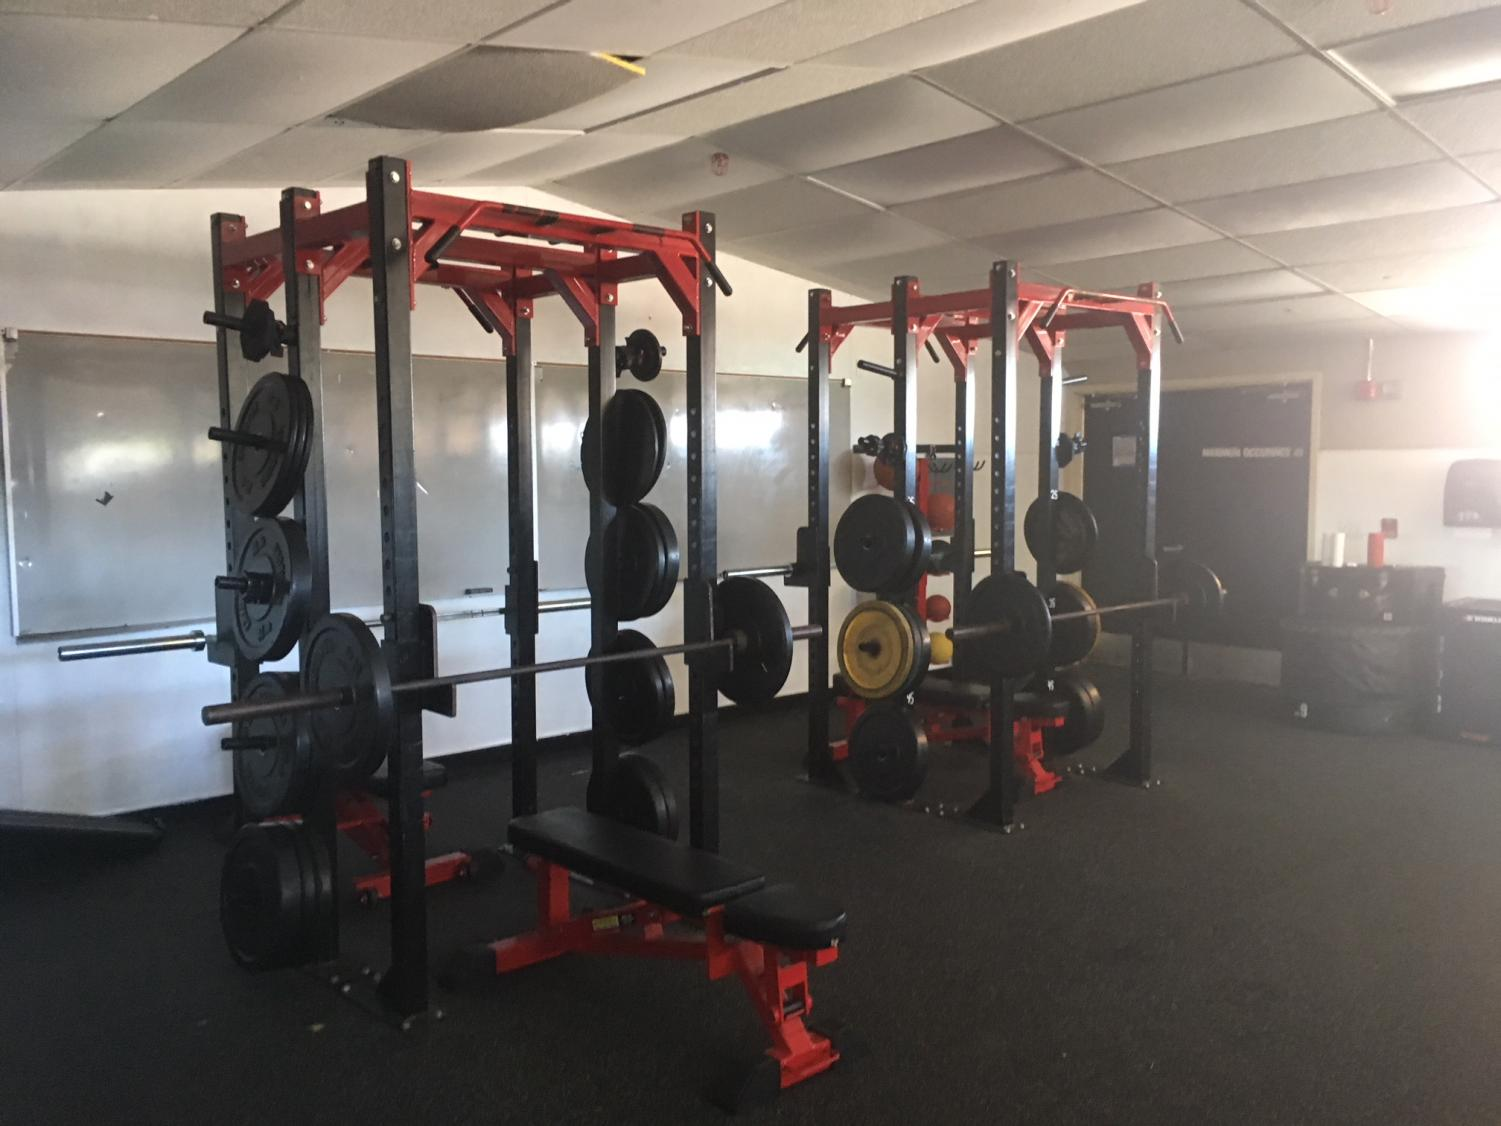 Two+of+the+old+squat+racks+still+remain+but+are+pushed+to+the+north+wall+to+allow+for+more+center+space